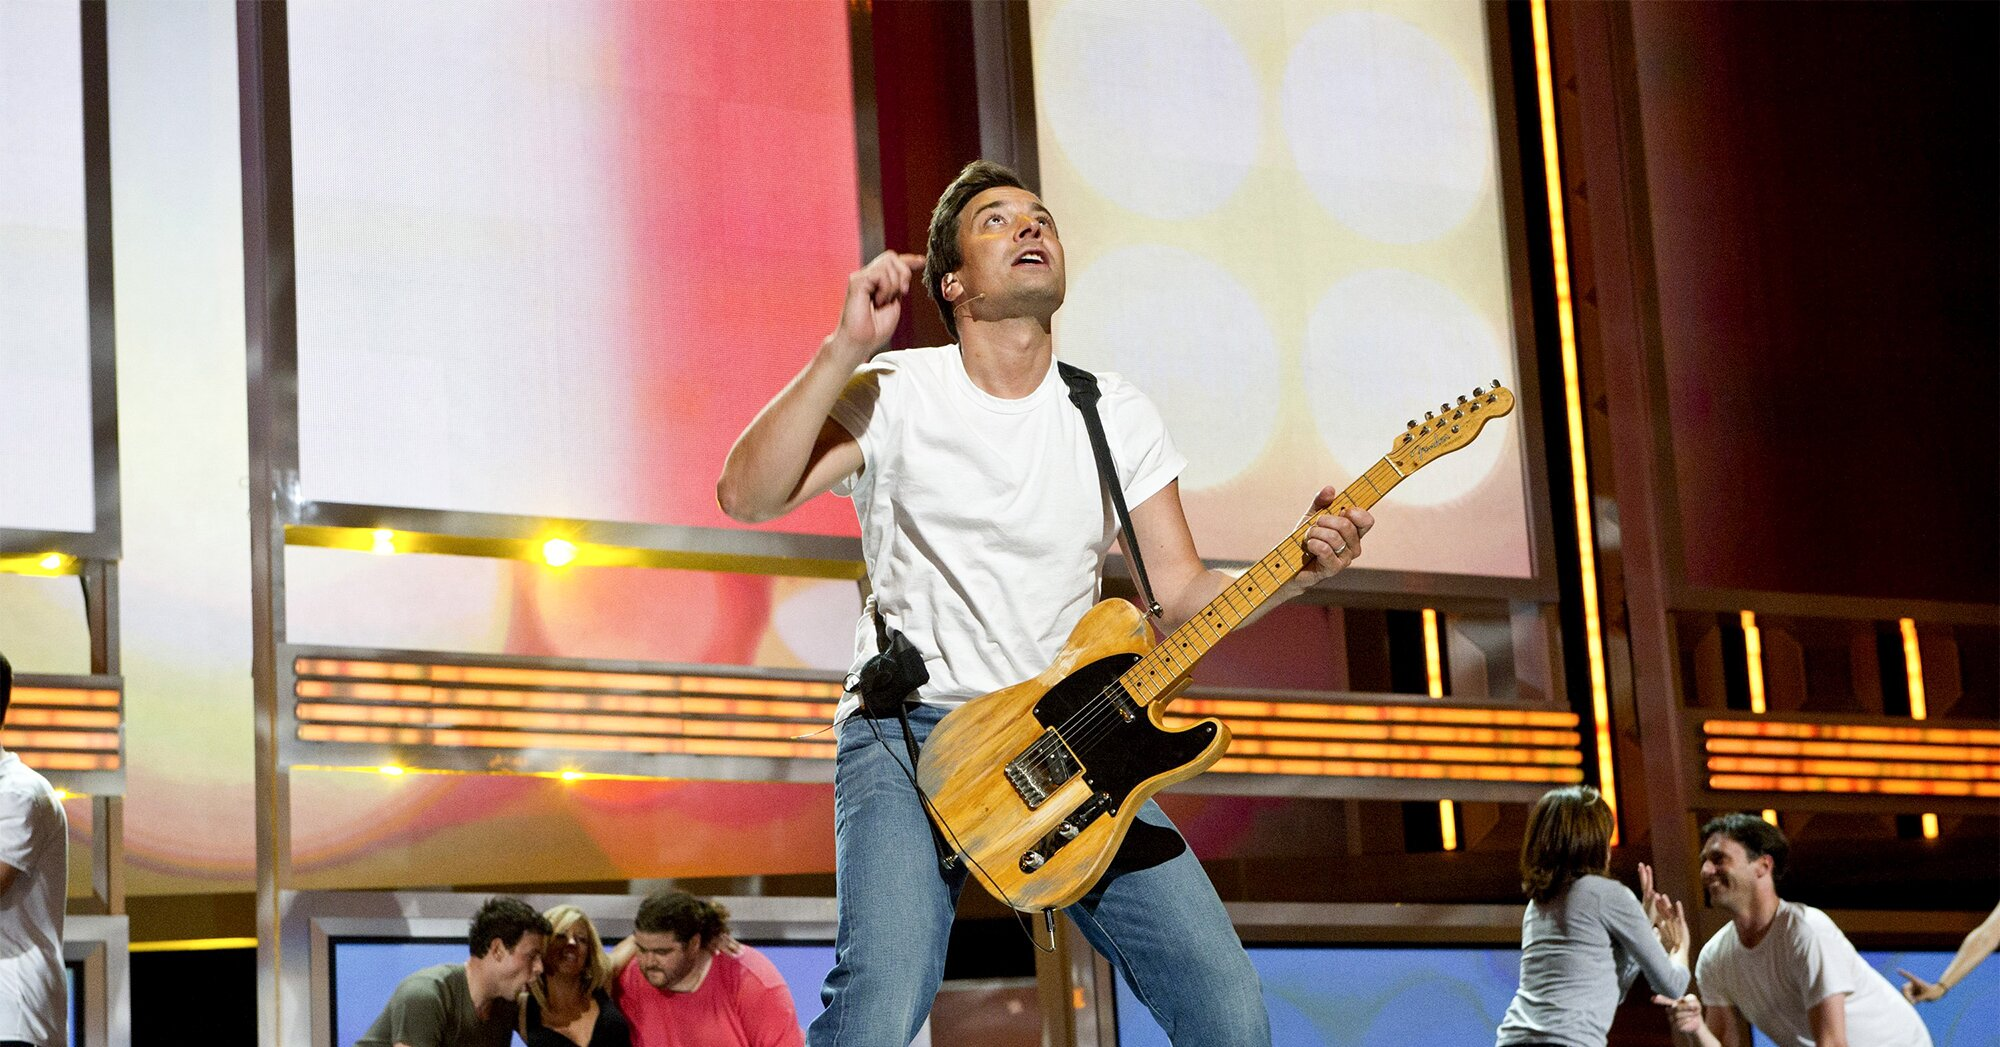 Emmys flashback: Jimmy Fallon remembers opening show with 'Born to Run' 10 years ago